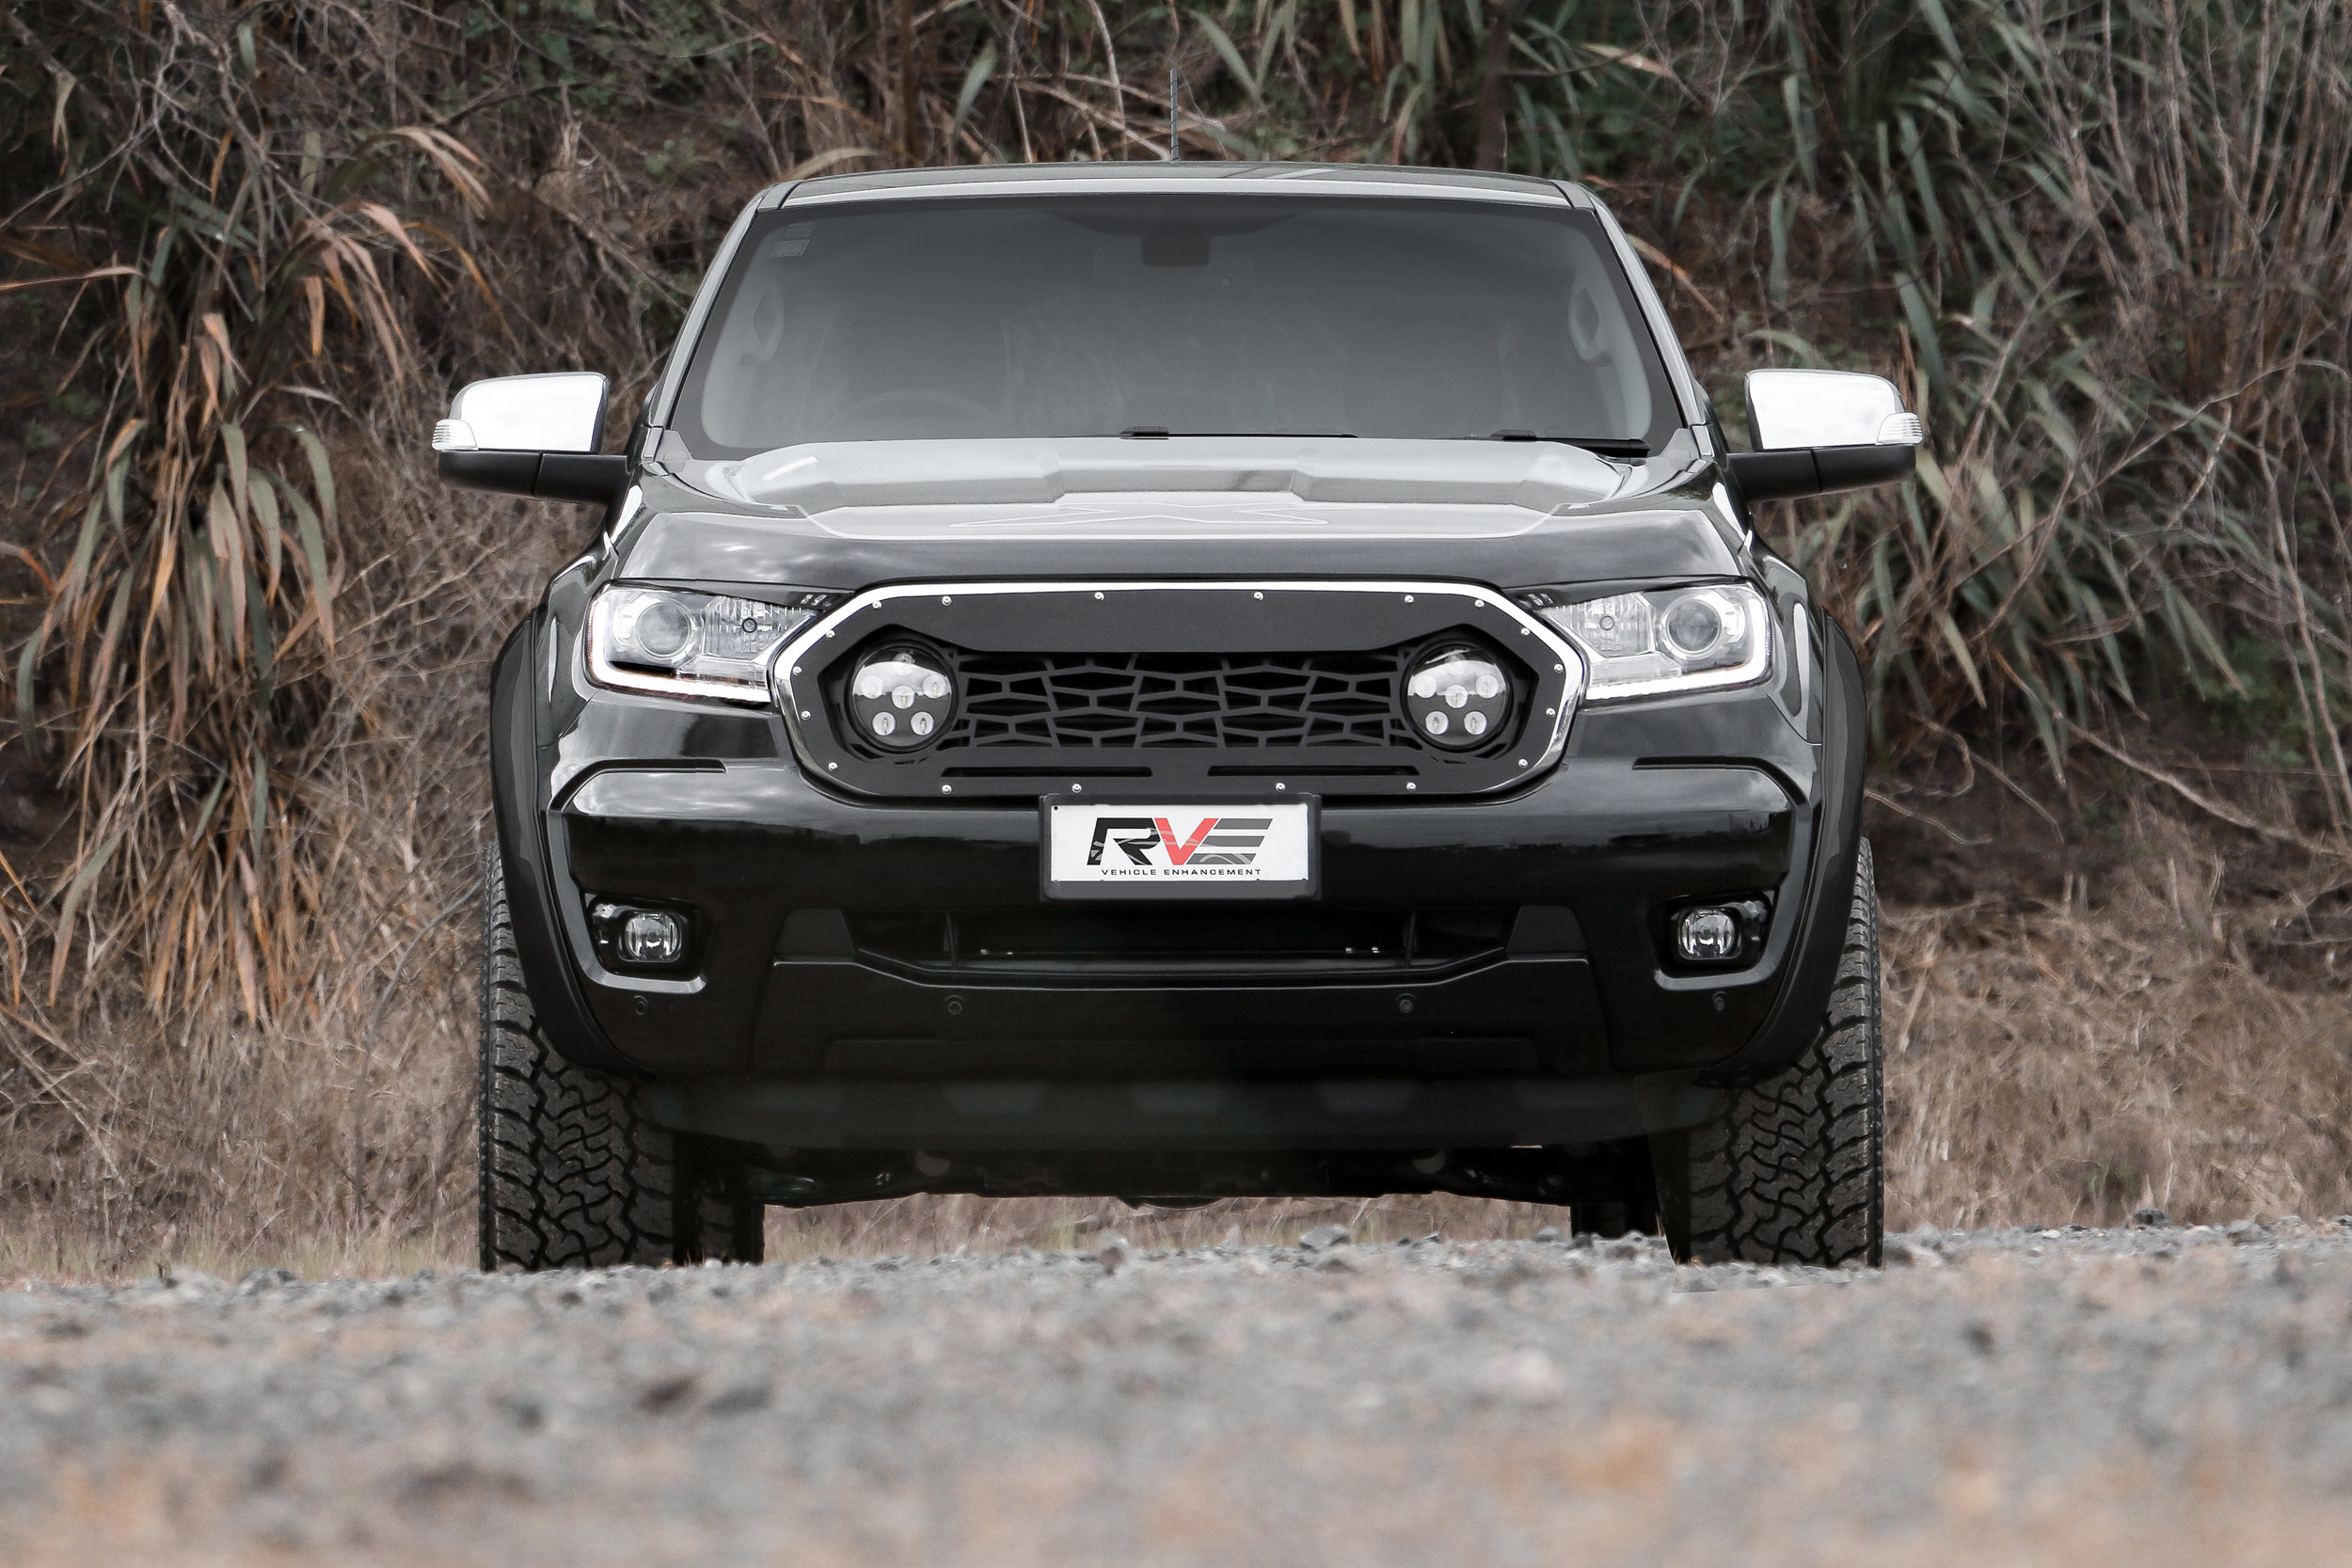 Grille mesh with outer bezel and lights